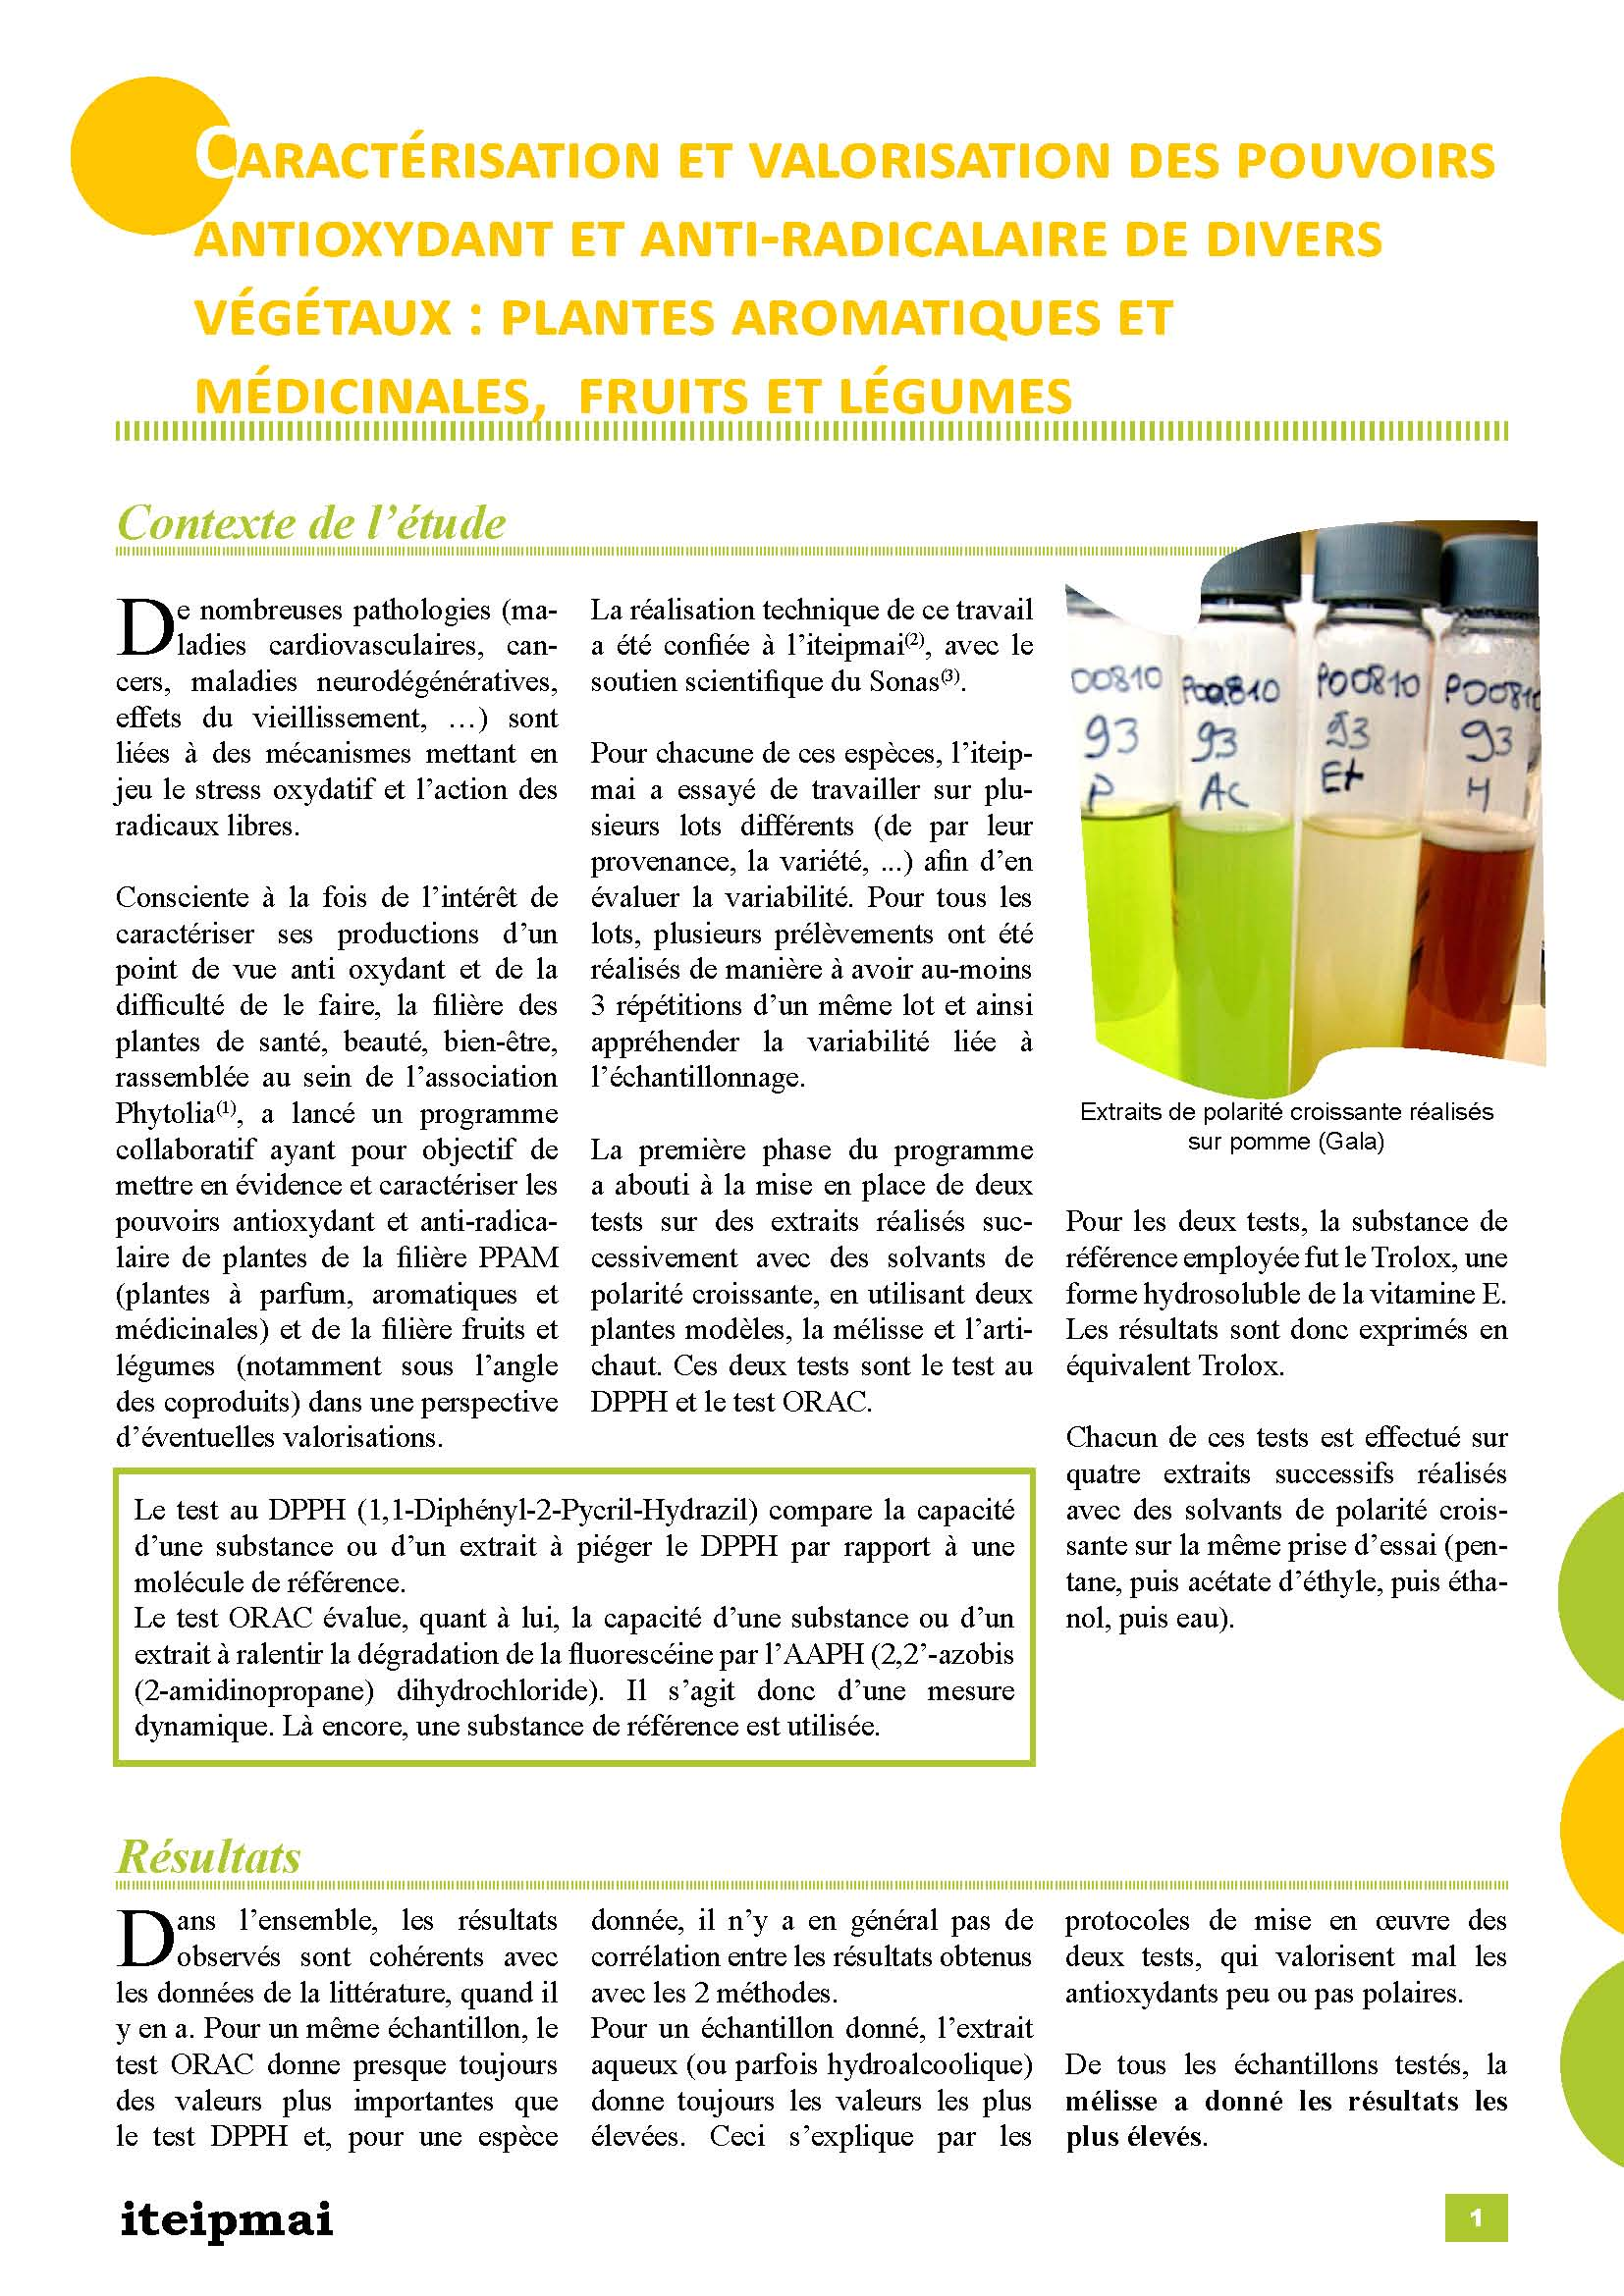 Pages de Article antioxydants